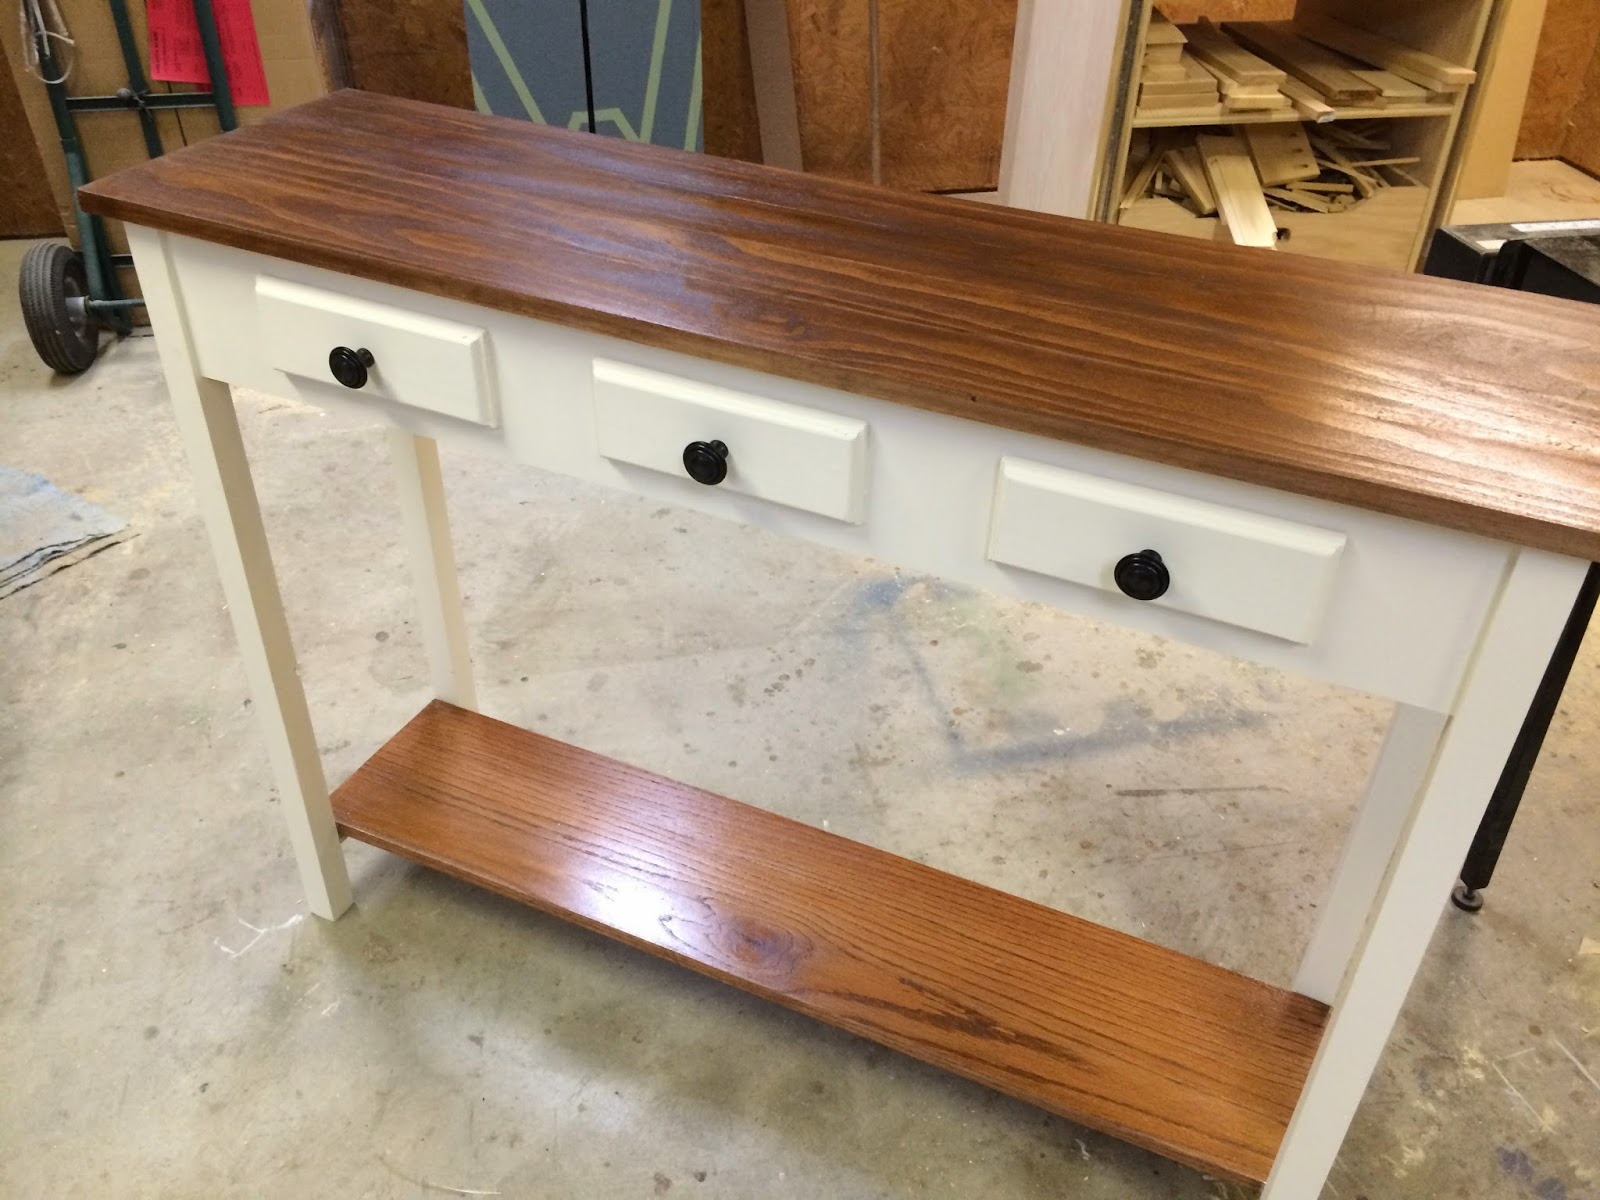 ... and batten in my entryway, I decided to build a simple entryway table